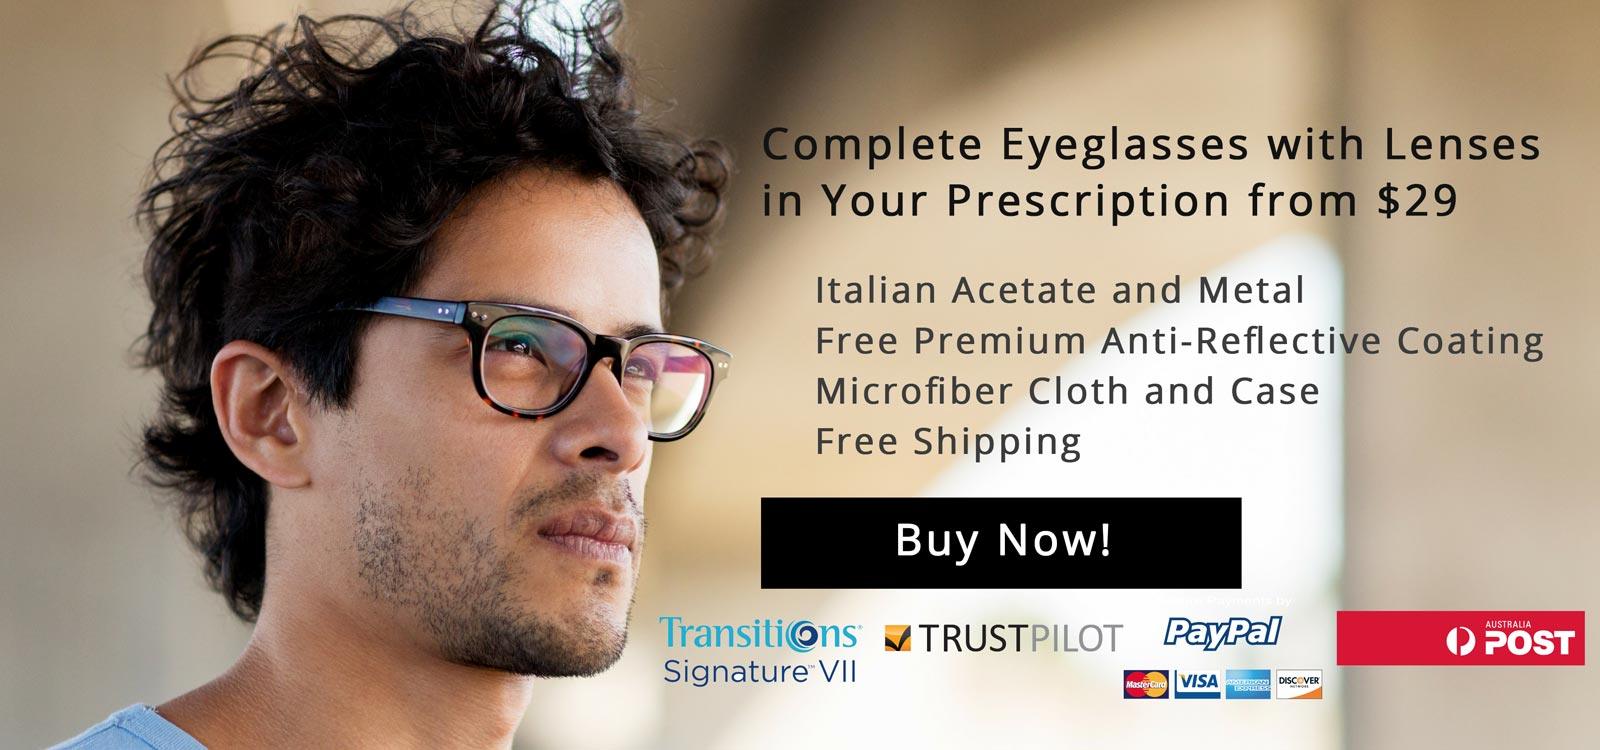 Complete Eyeglasses with Prescription Lenses from $29